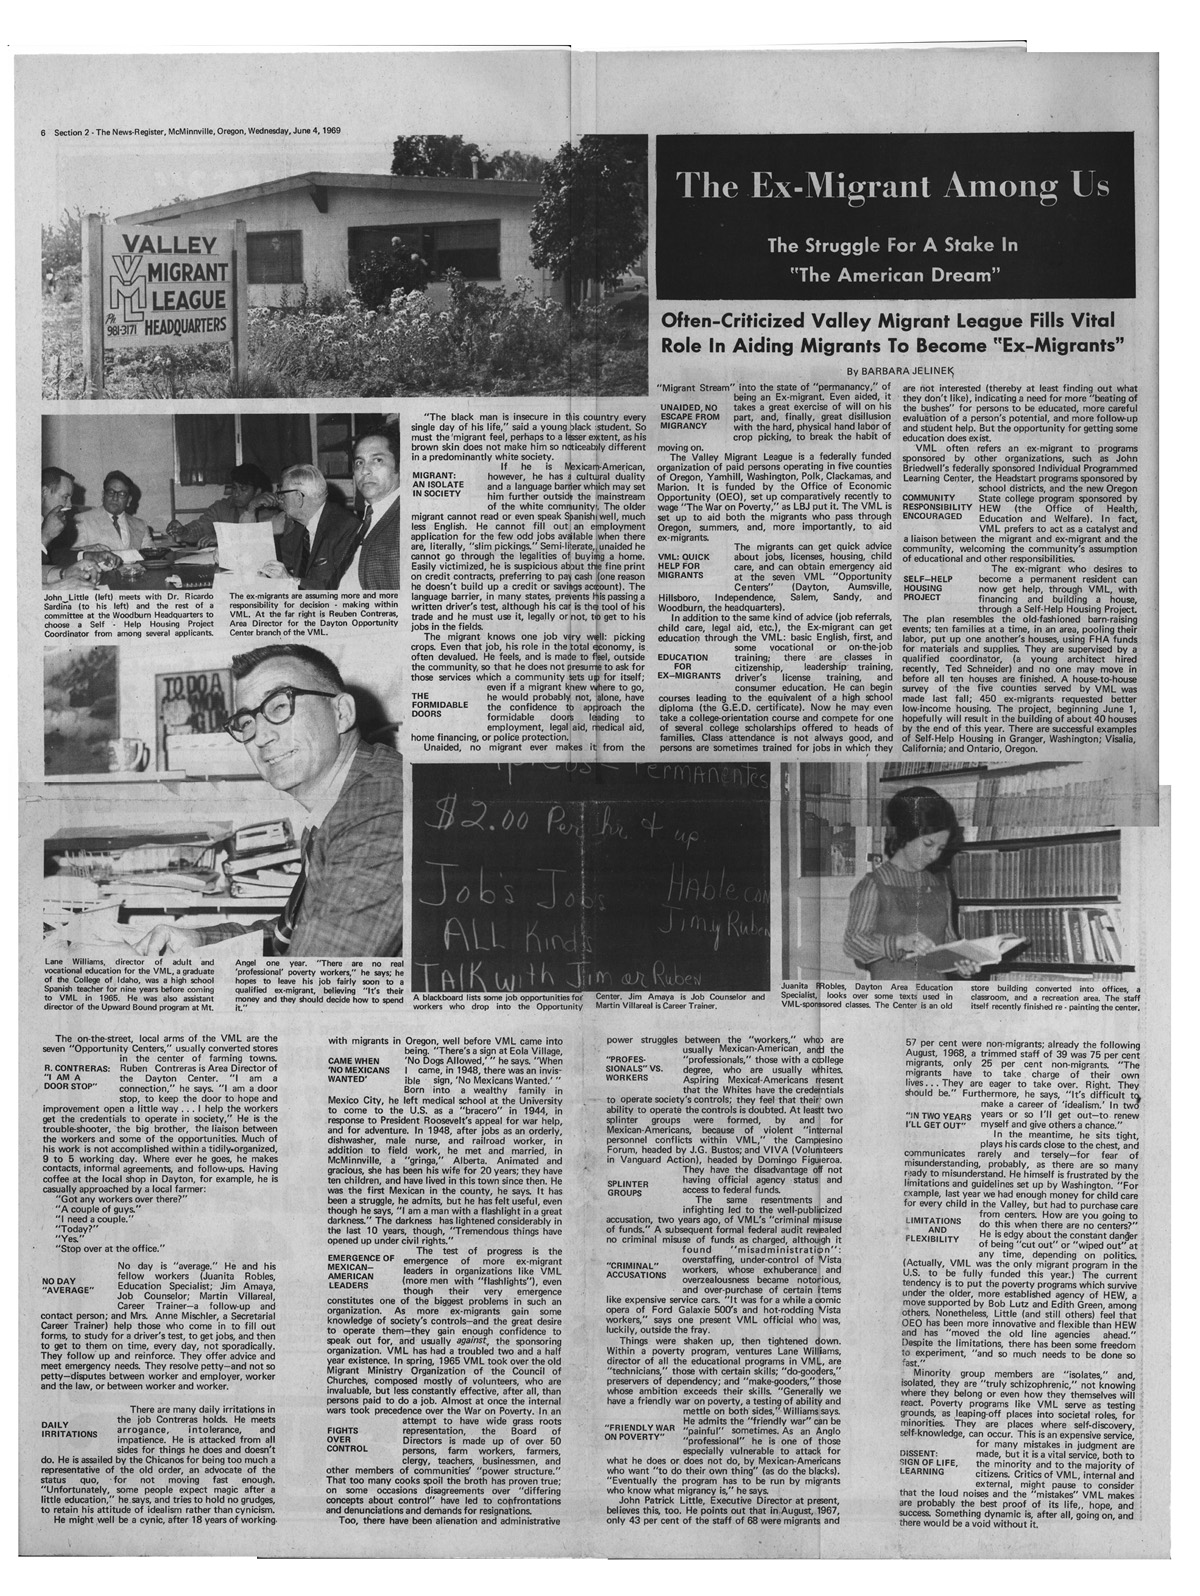 1969 VML Newspaper Feature